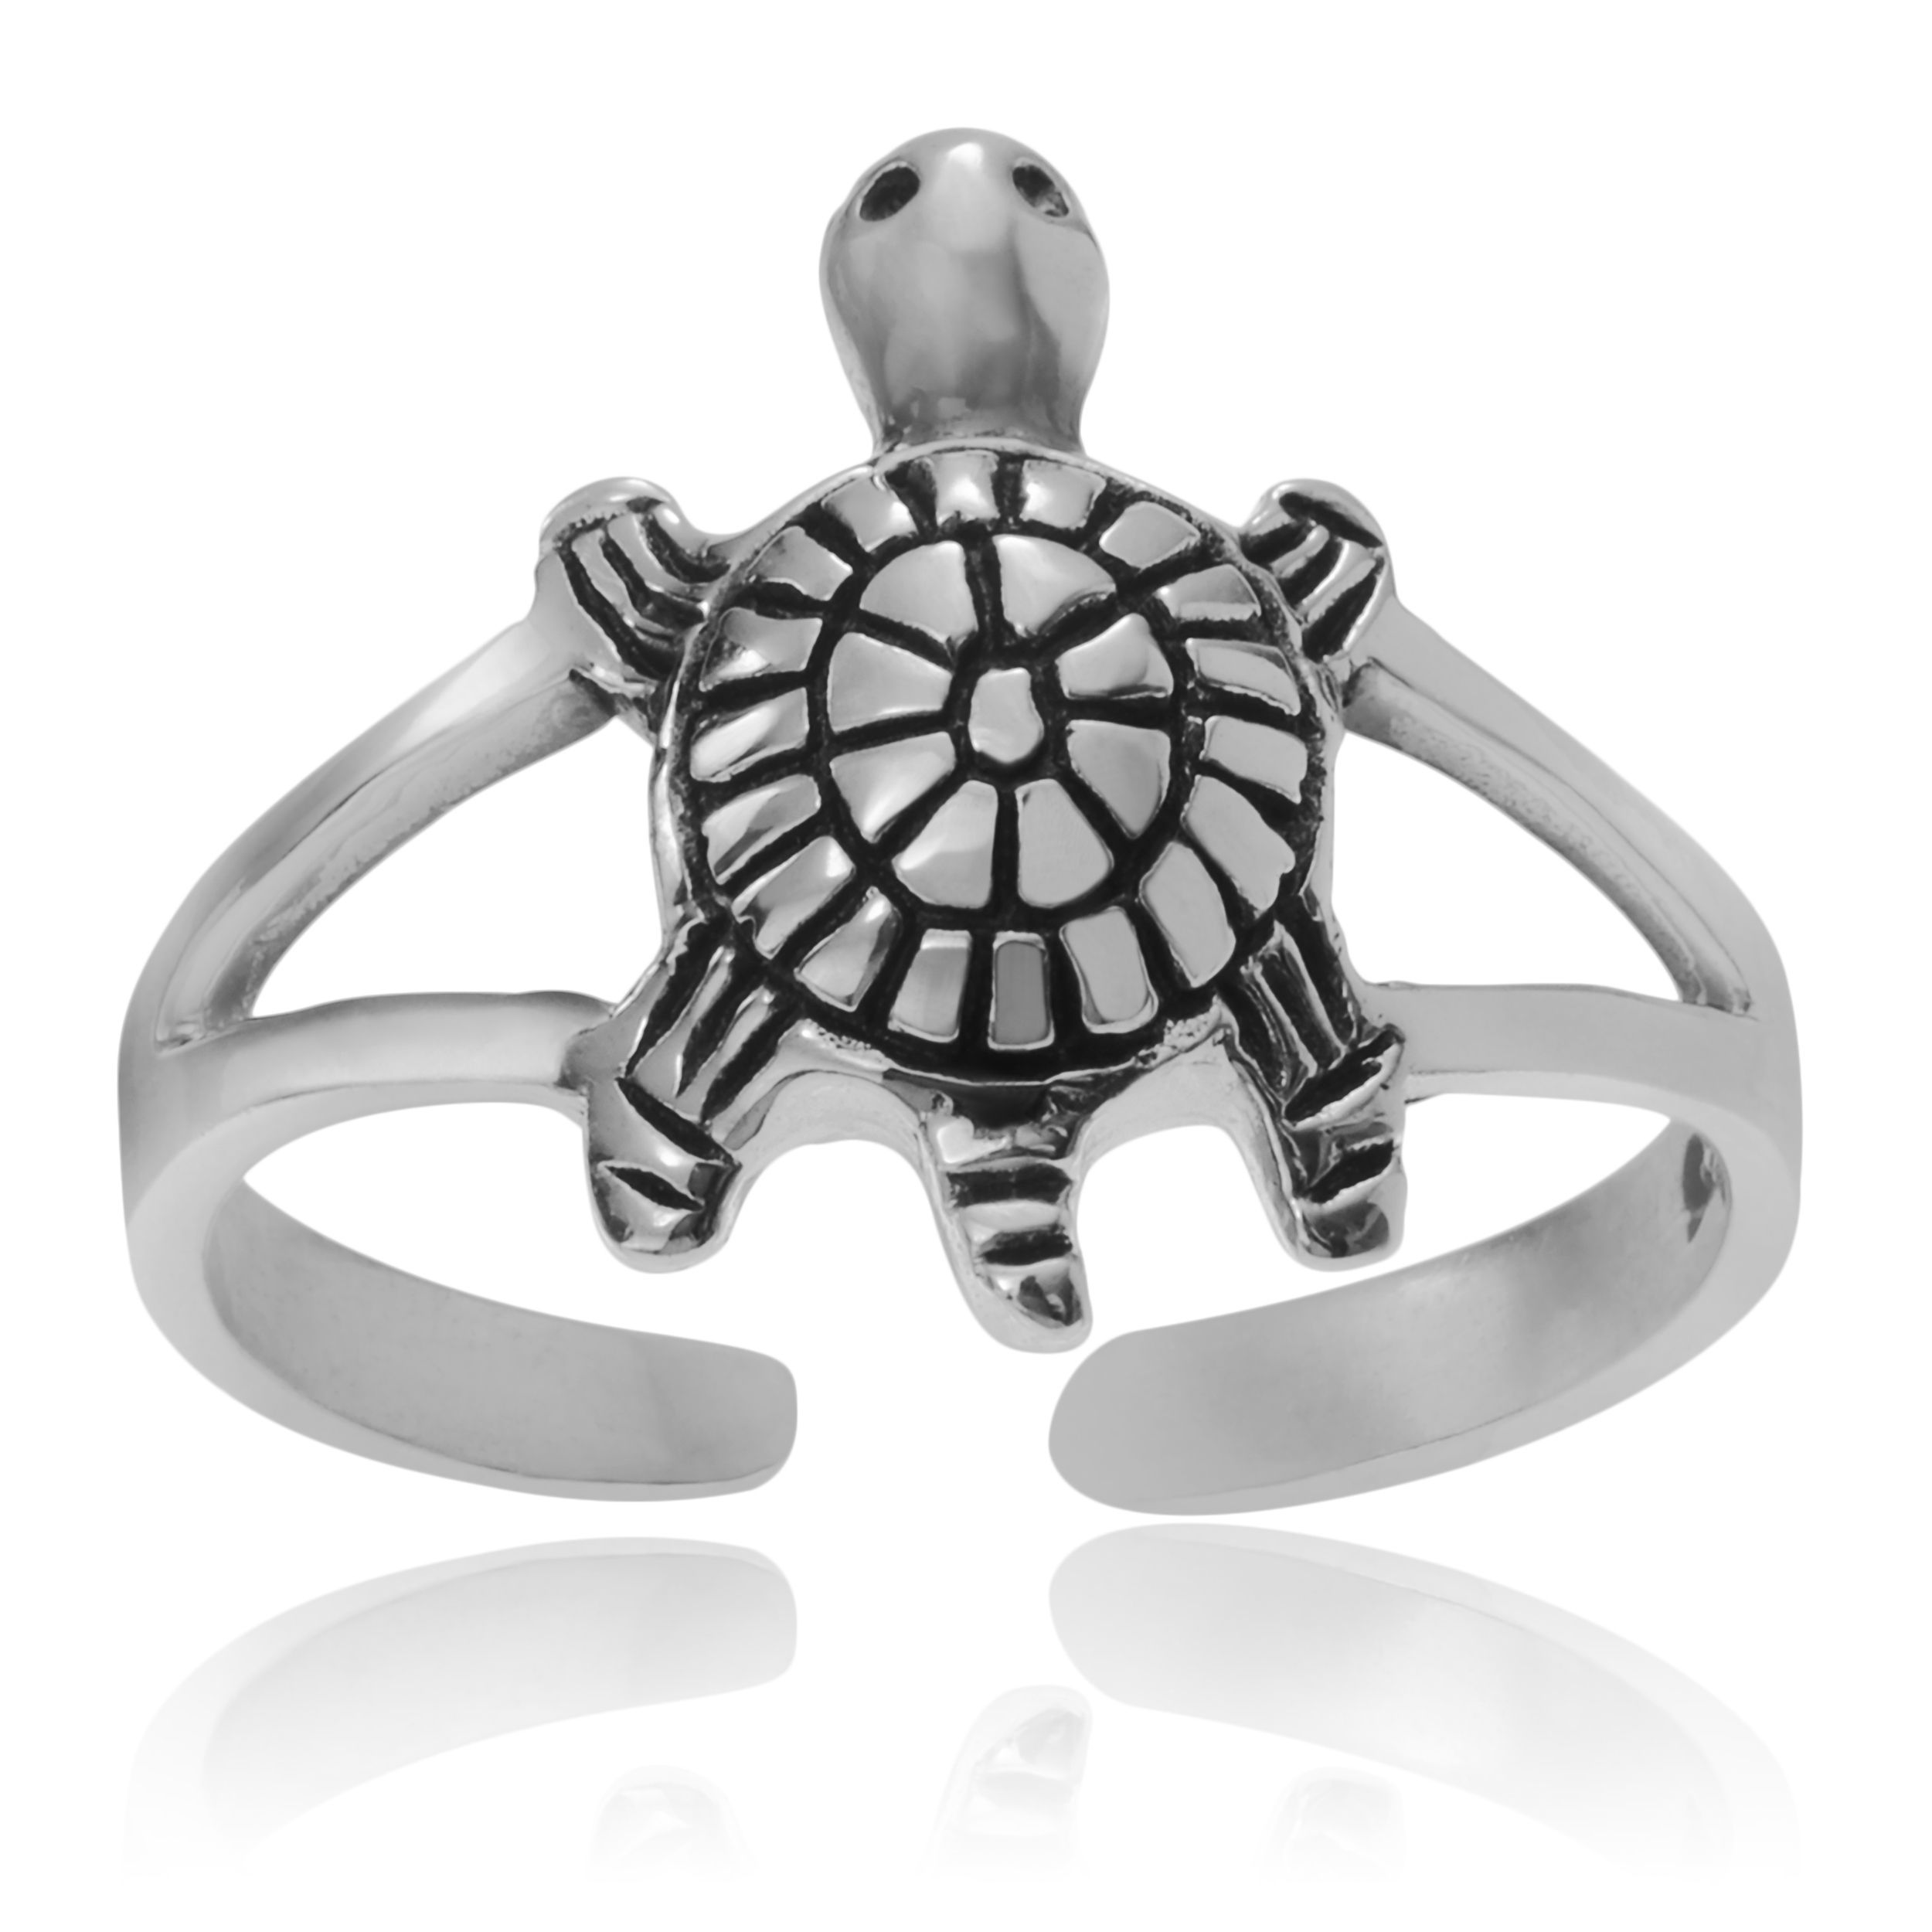 Journee Collection Sterling Turtle Adjustable Toe Ring, Women's